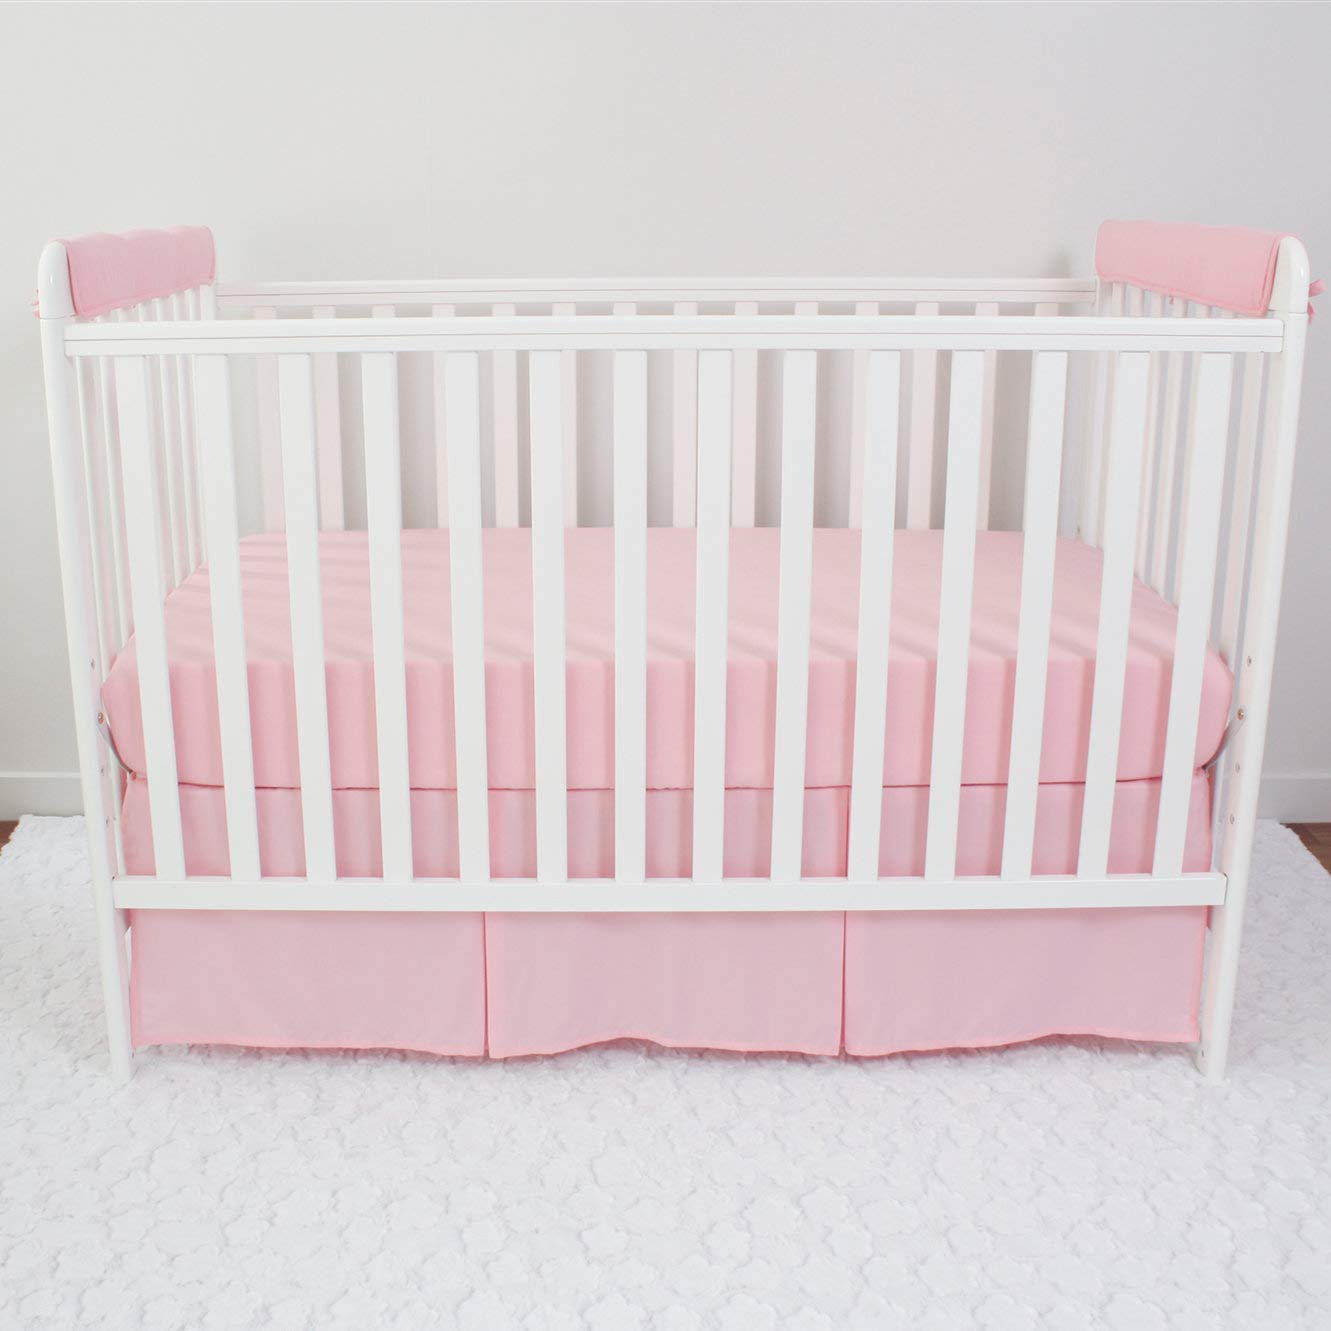 Fits Up to 8 Around or 4 Folded Safe Breathable Batting Inner for Baby Teething Guard Pink//White CaSaJa 3 Pieces Soft Reversible Microfiber Crib Rail Cover Set for 1 Front Rail and 2 Side Rails